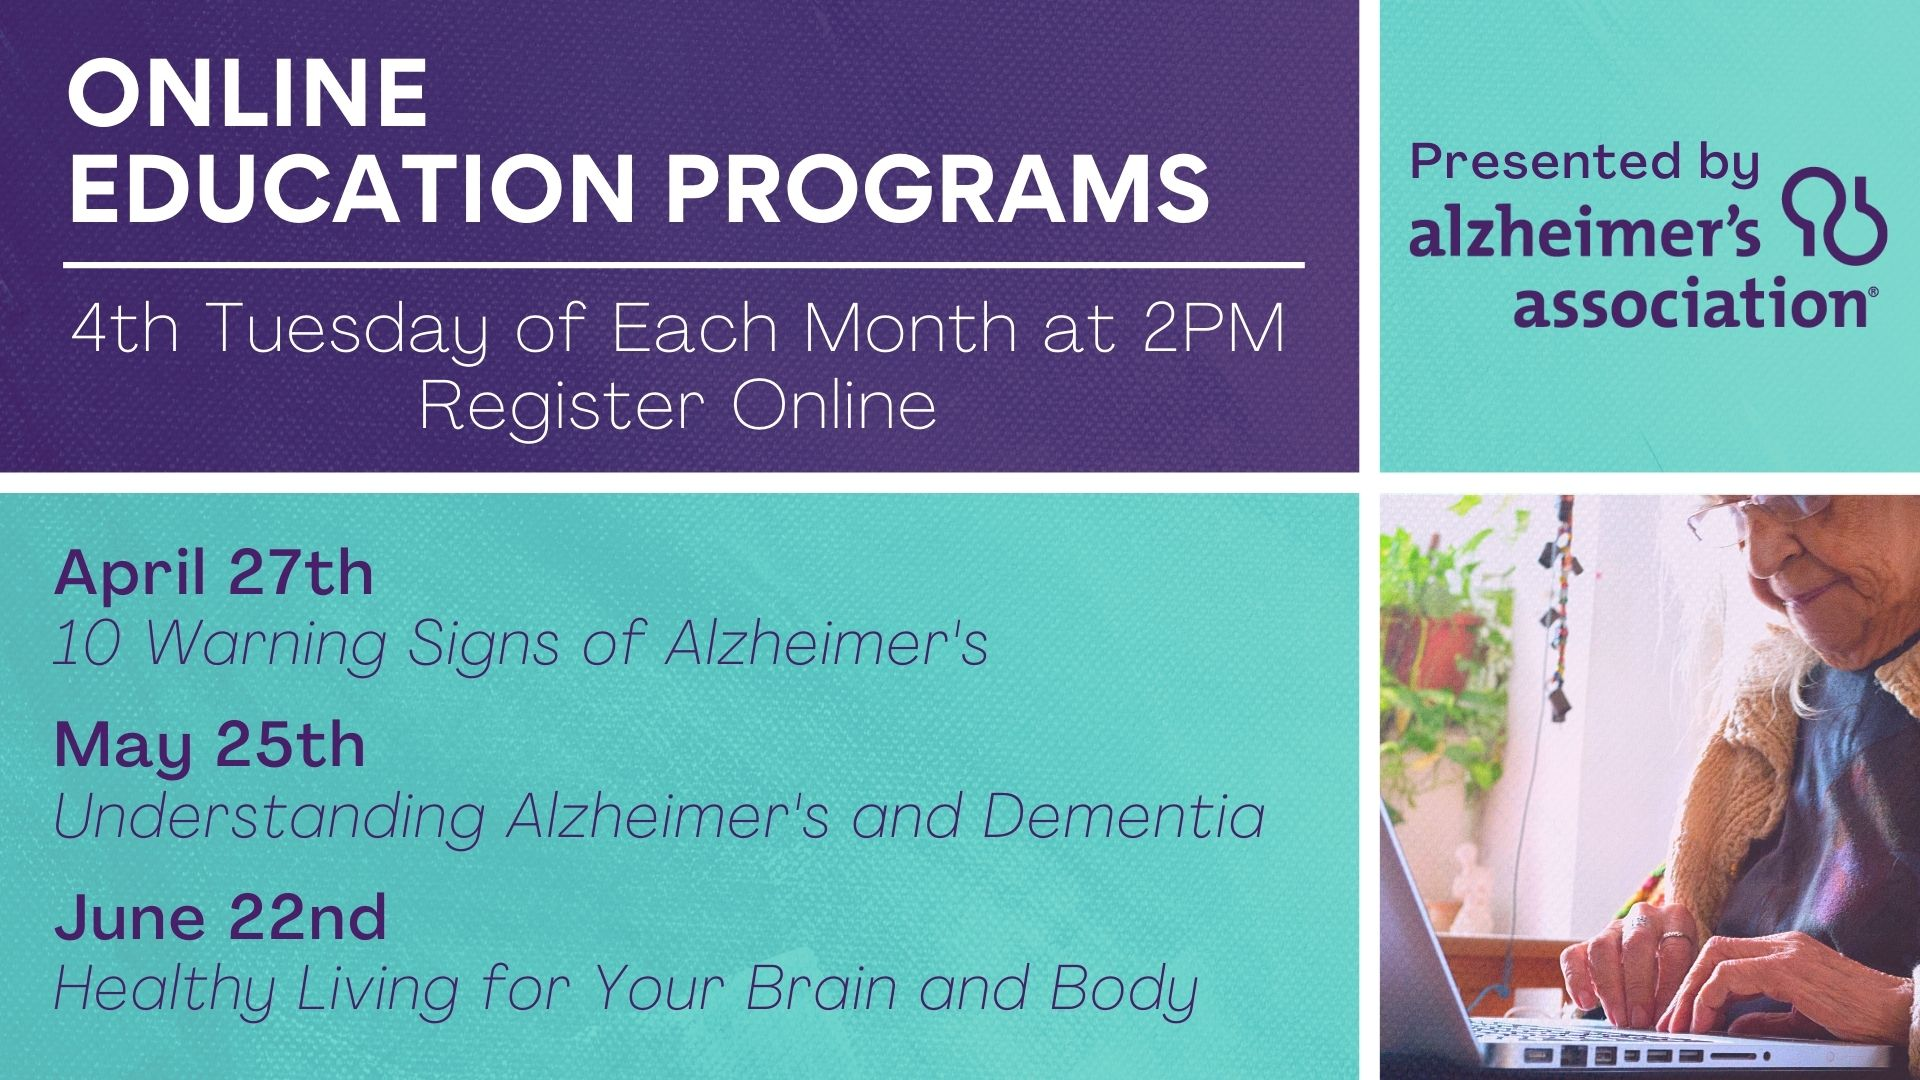 Online Education Programs with the Alzheimer's Association